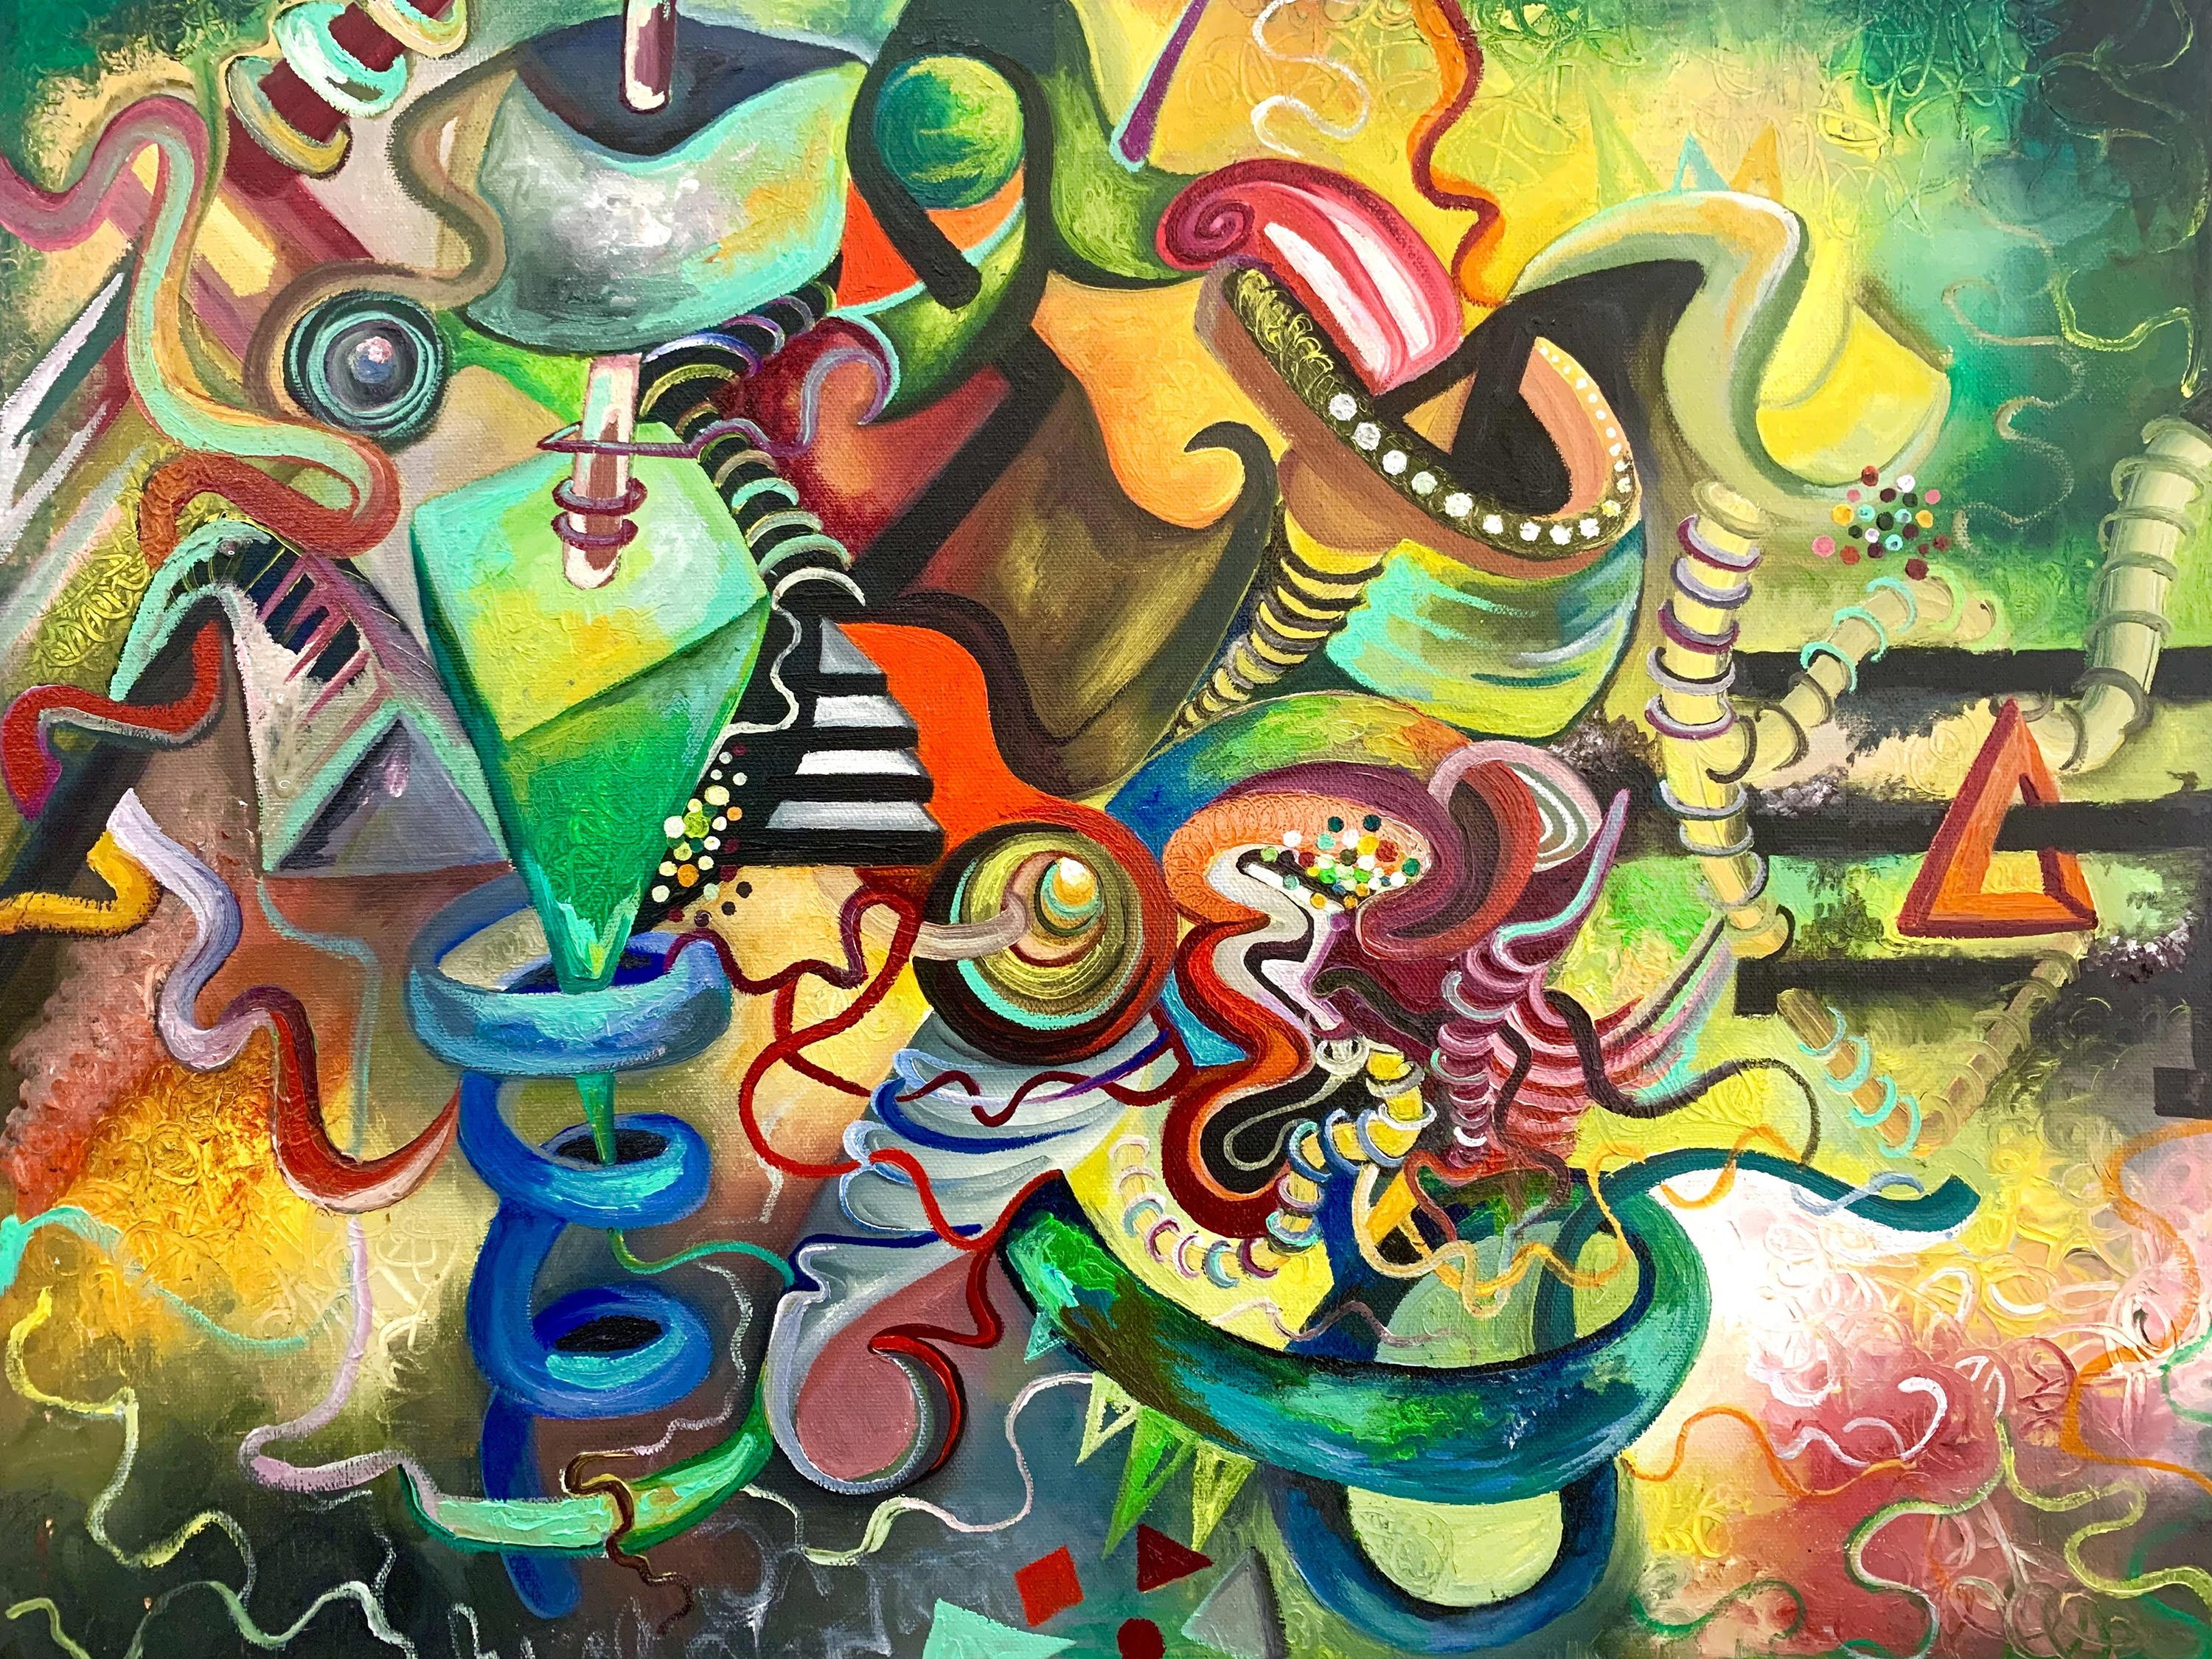 Shea McCarthy oil painting, titled Colored Subconscious